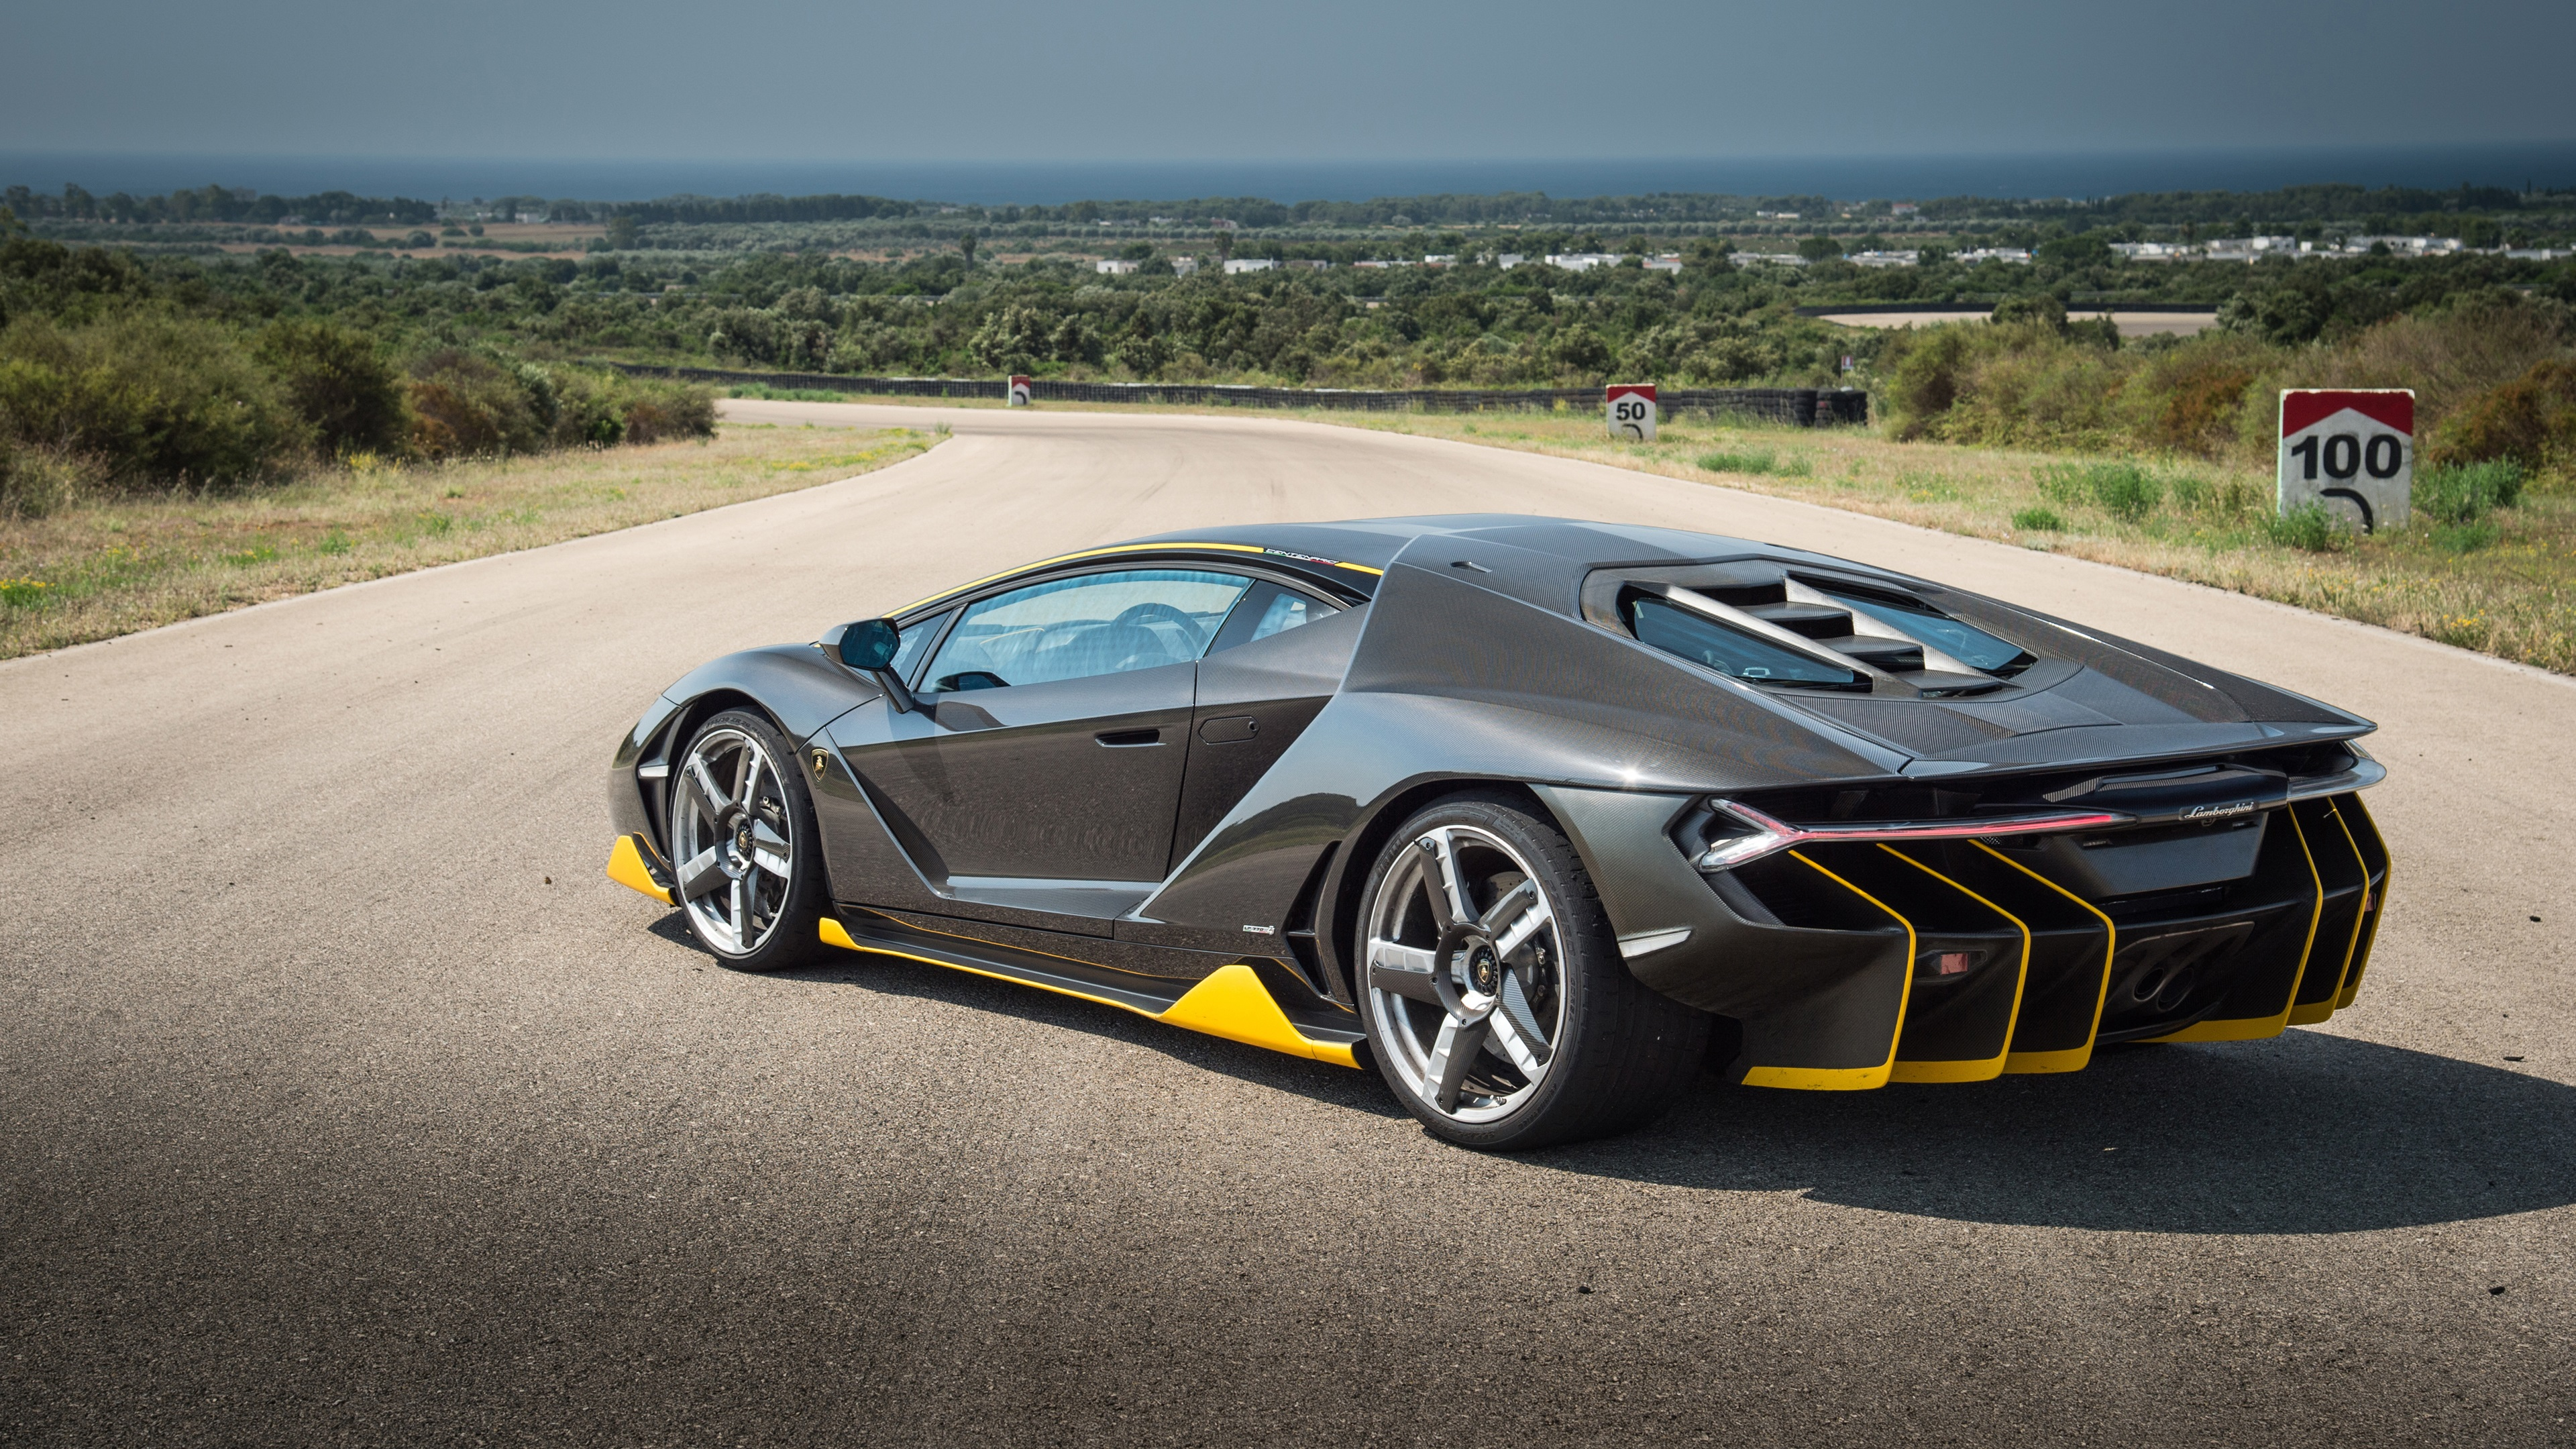 Wallpaper Lamborghini Centenario Black Supercar Back View 3840x2160